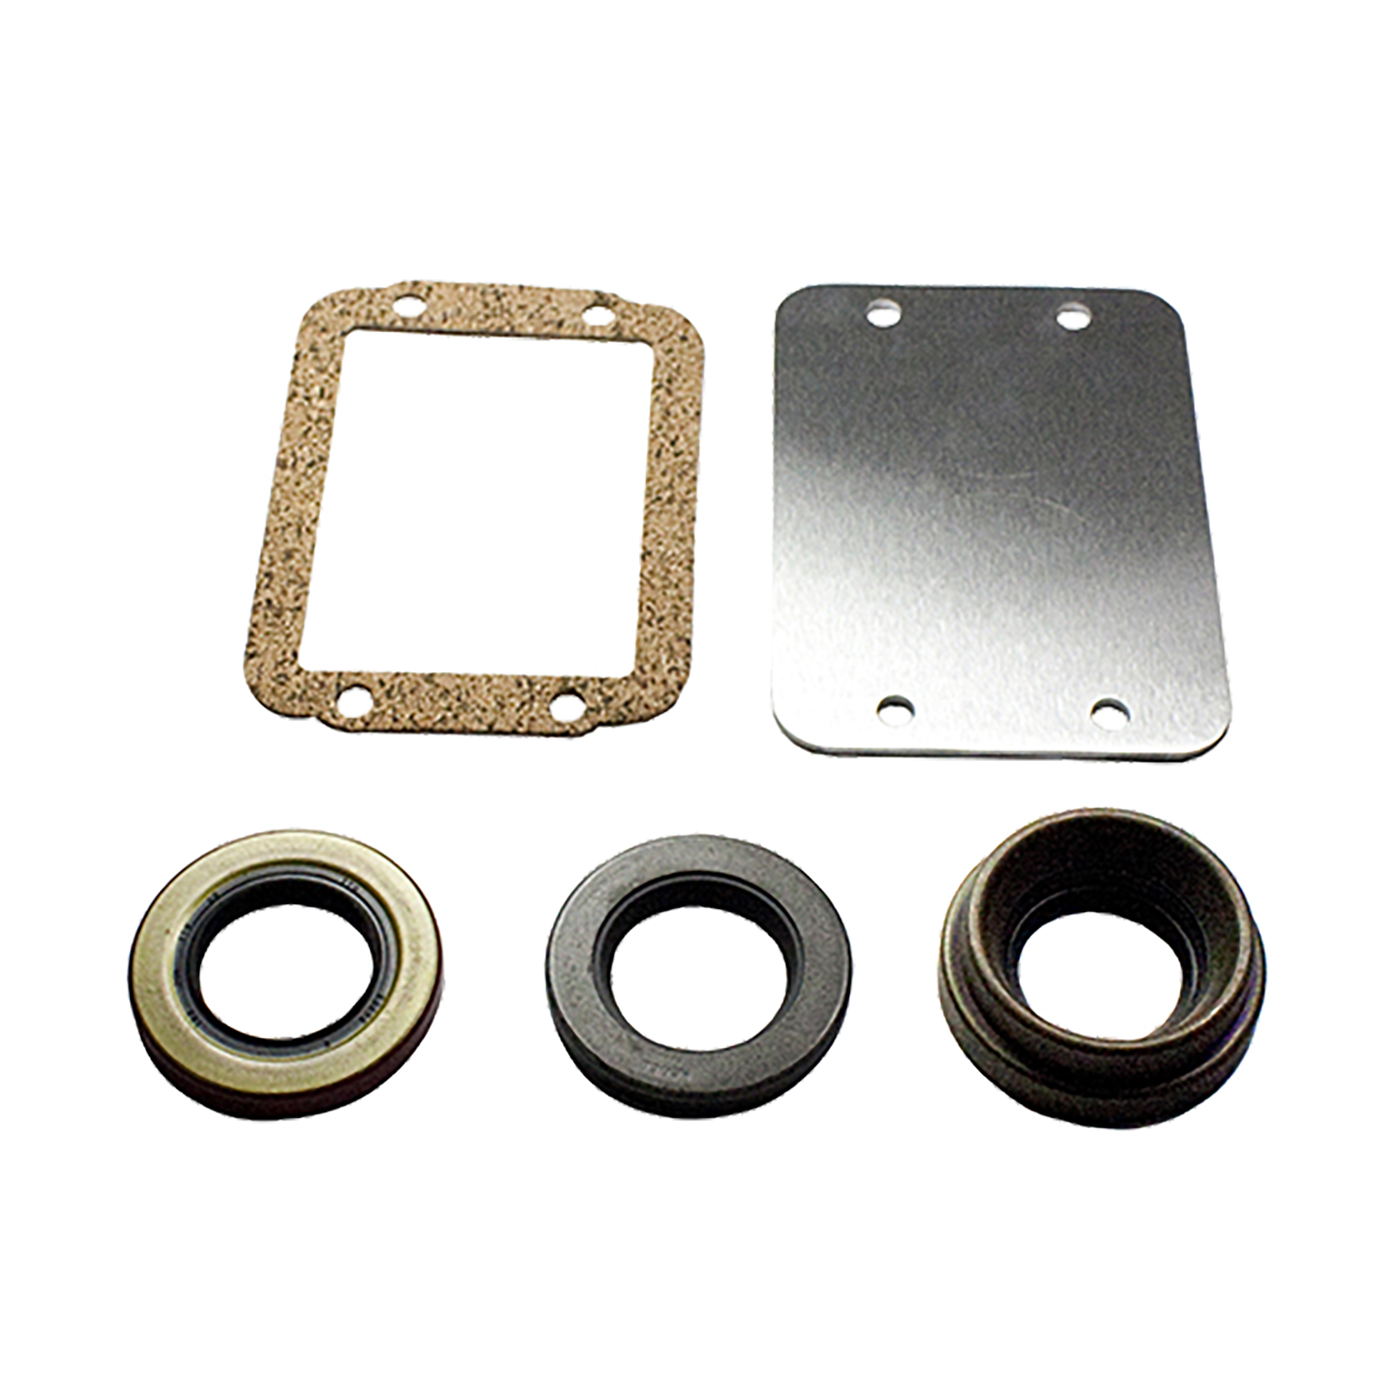 YA W39147-KIT - Dana 30 Disconnect Block-off kit (includes seals and plate).